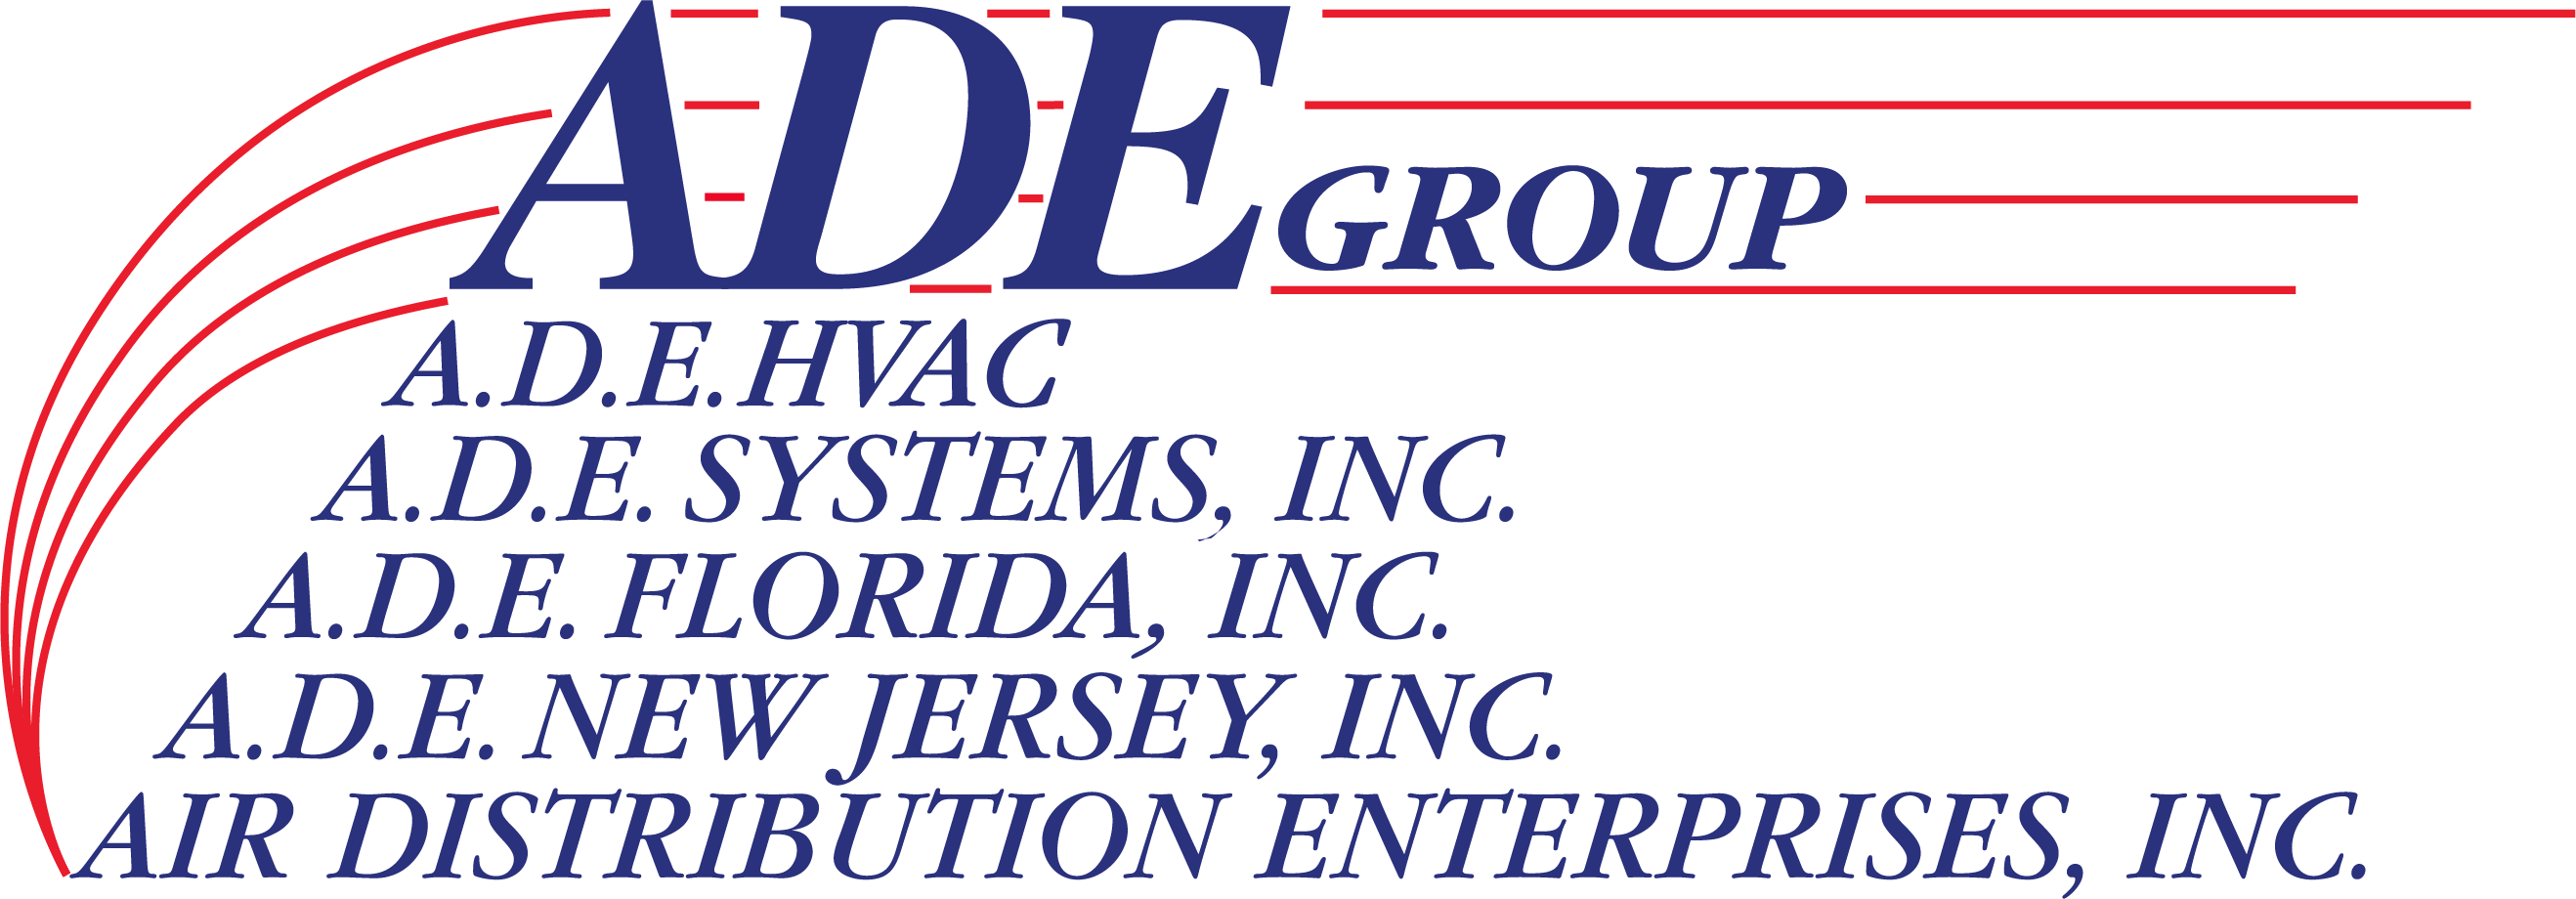 ADE Systems, Inc.